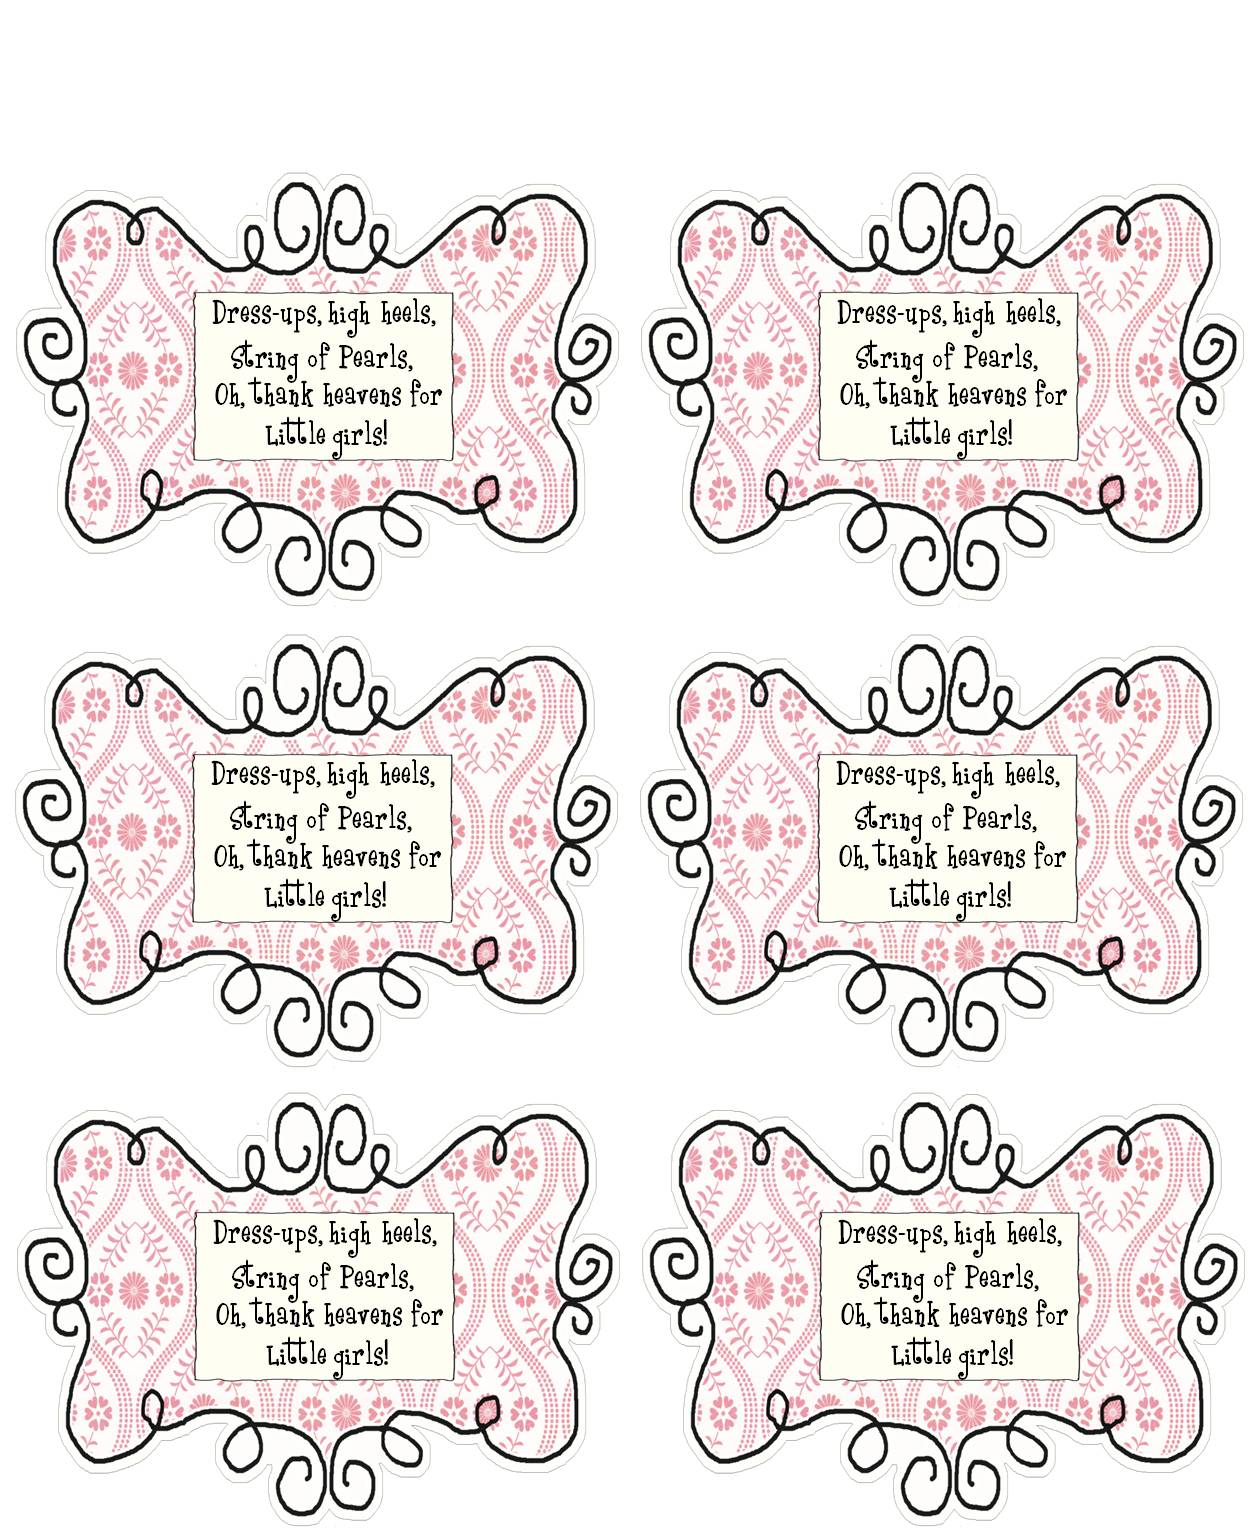 Bridal Shower Favor Tags Sayings : Quotes For Bridal Shower Favors. QuotesGram